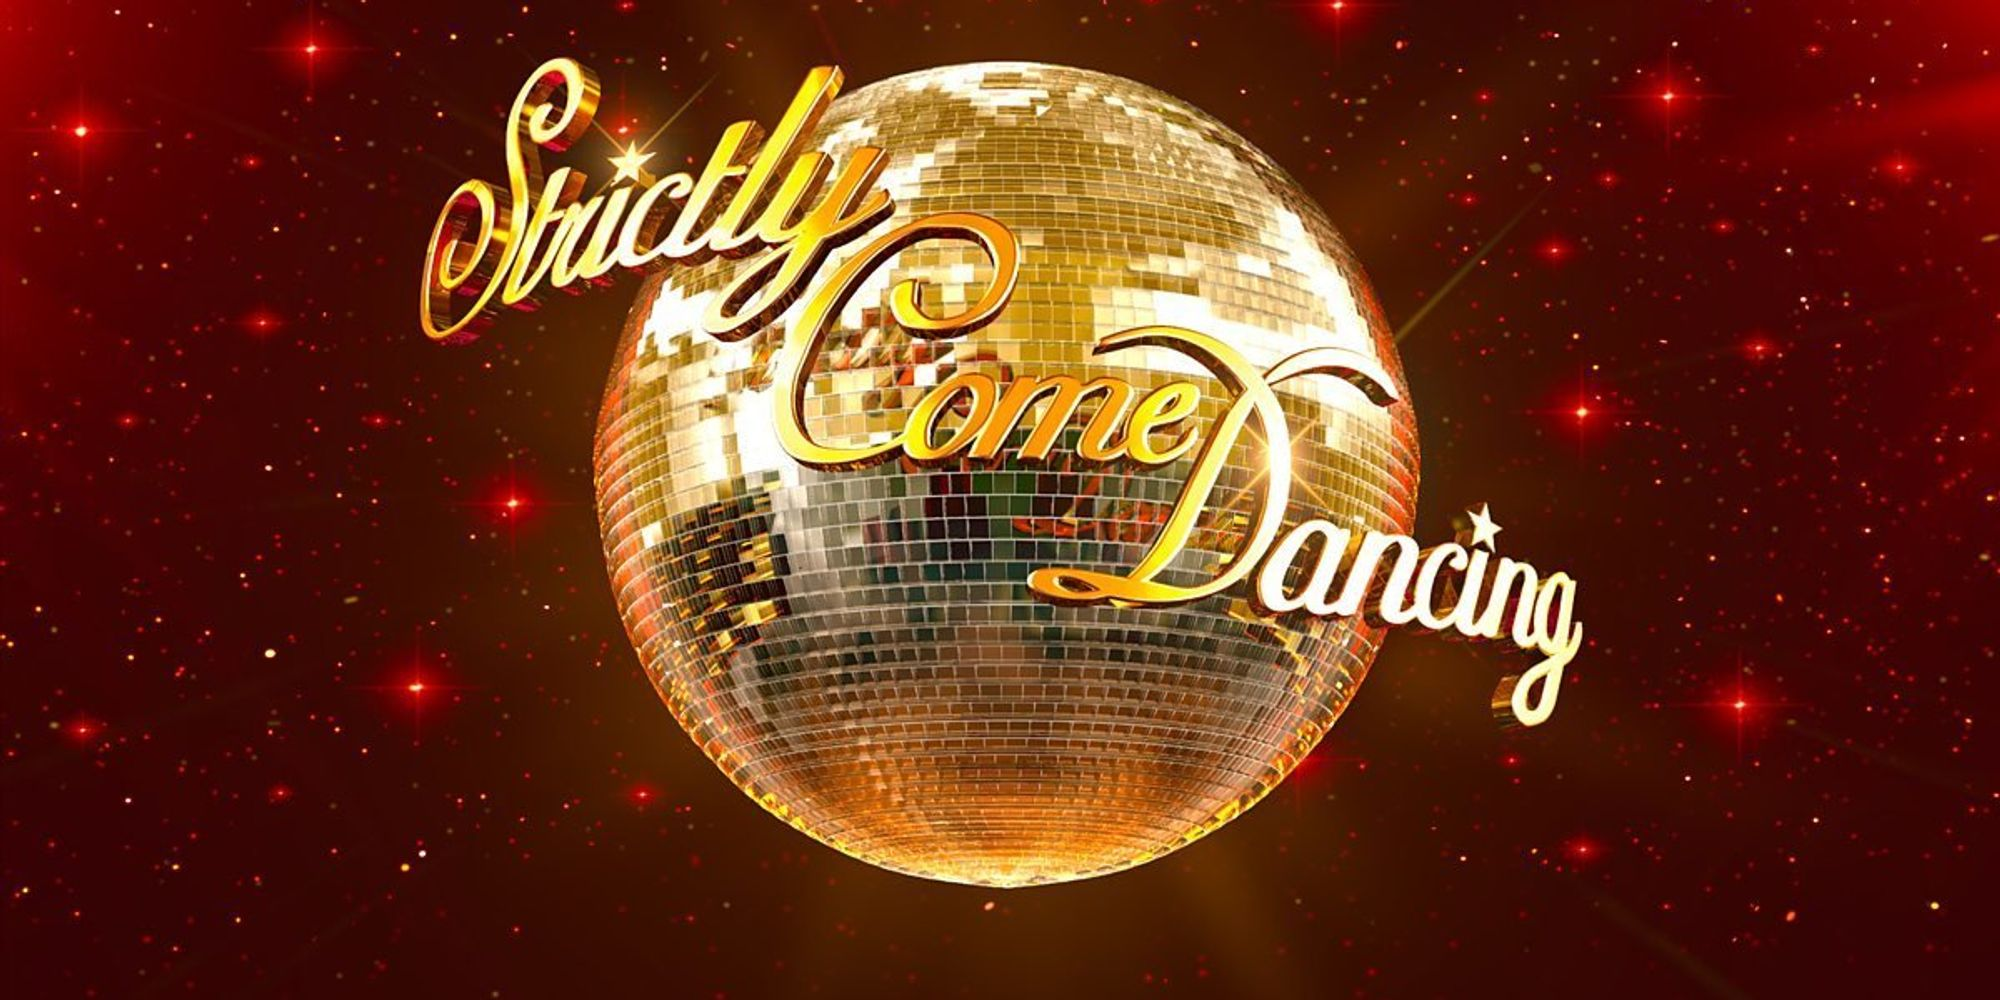 'Strictly Come Dancing' Has 'Signed Up' Its First Celebrity Contestant